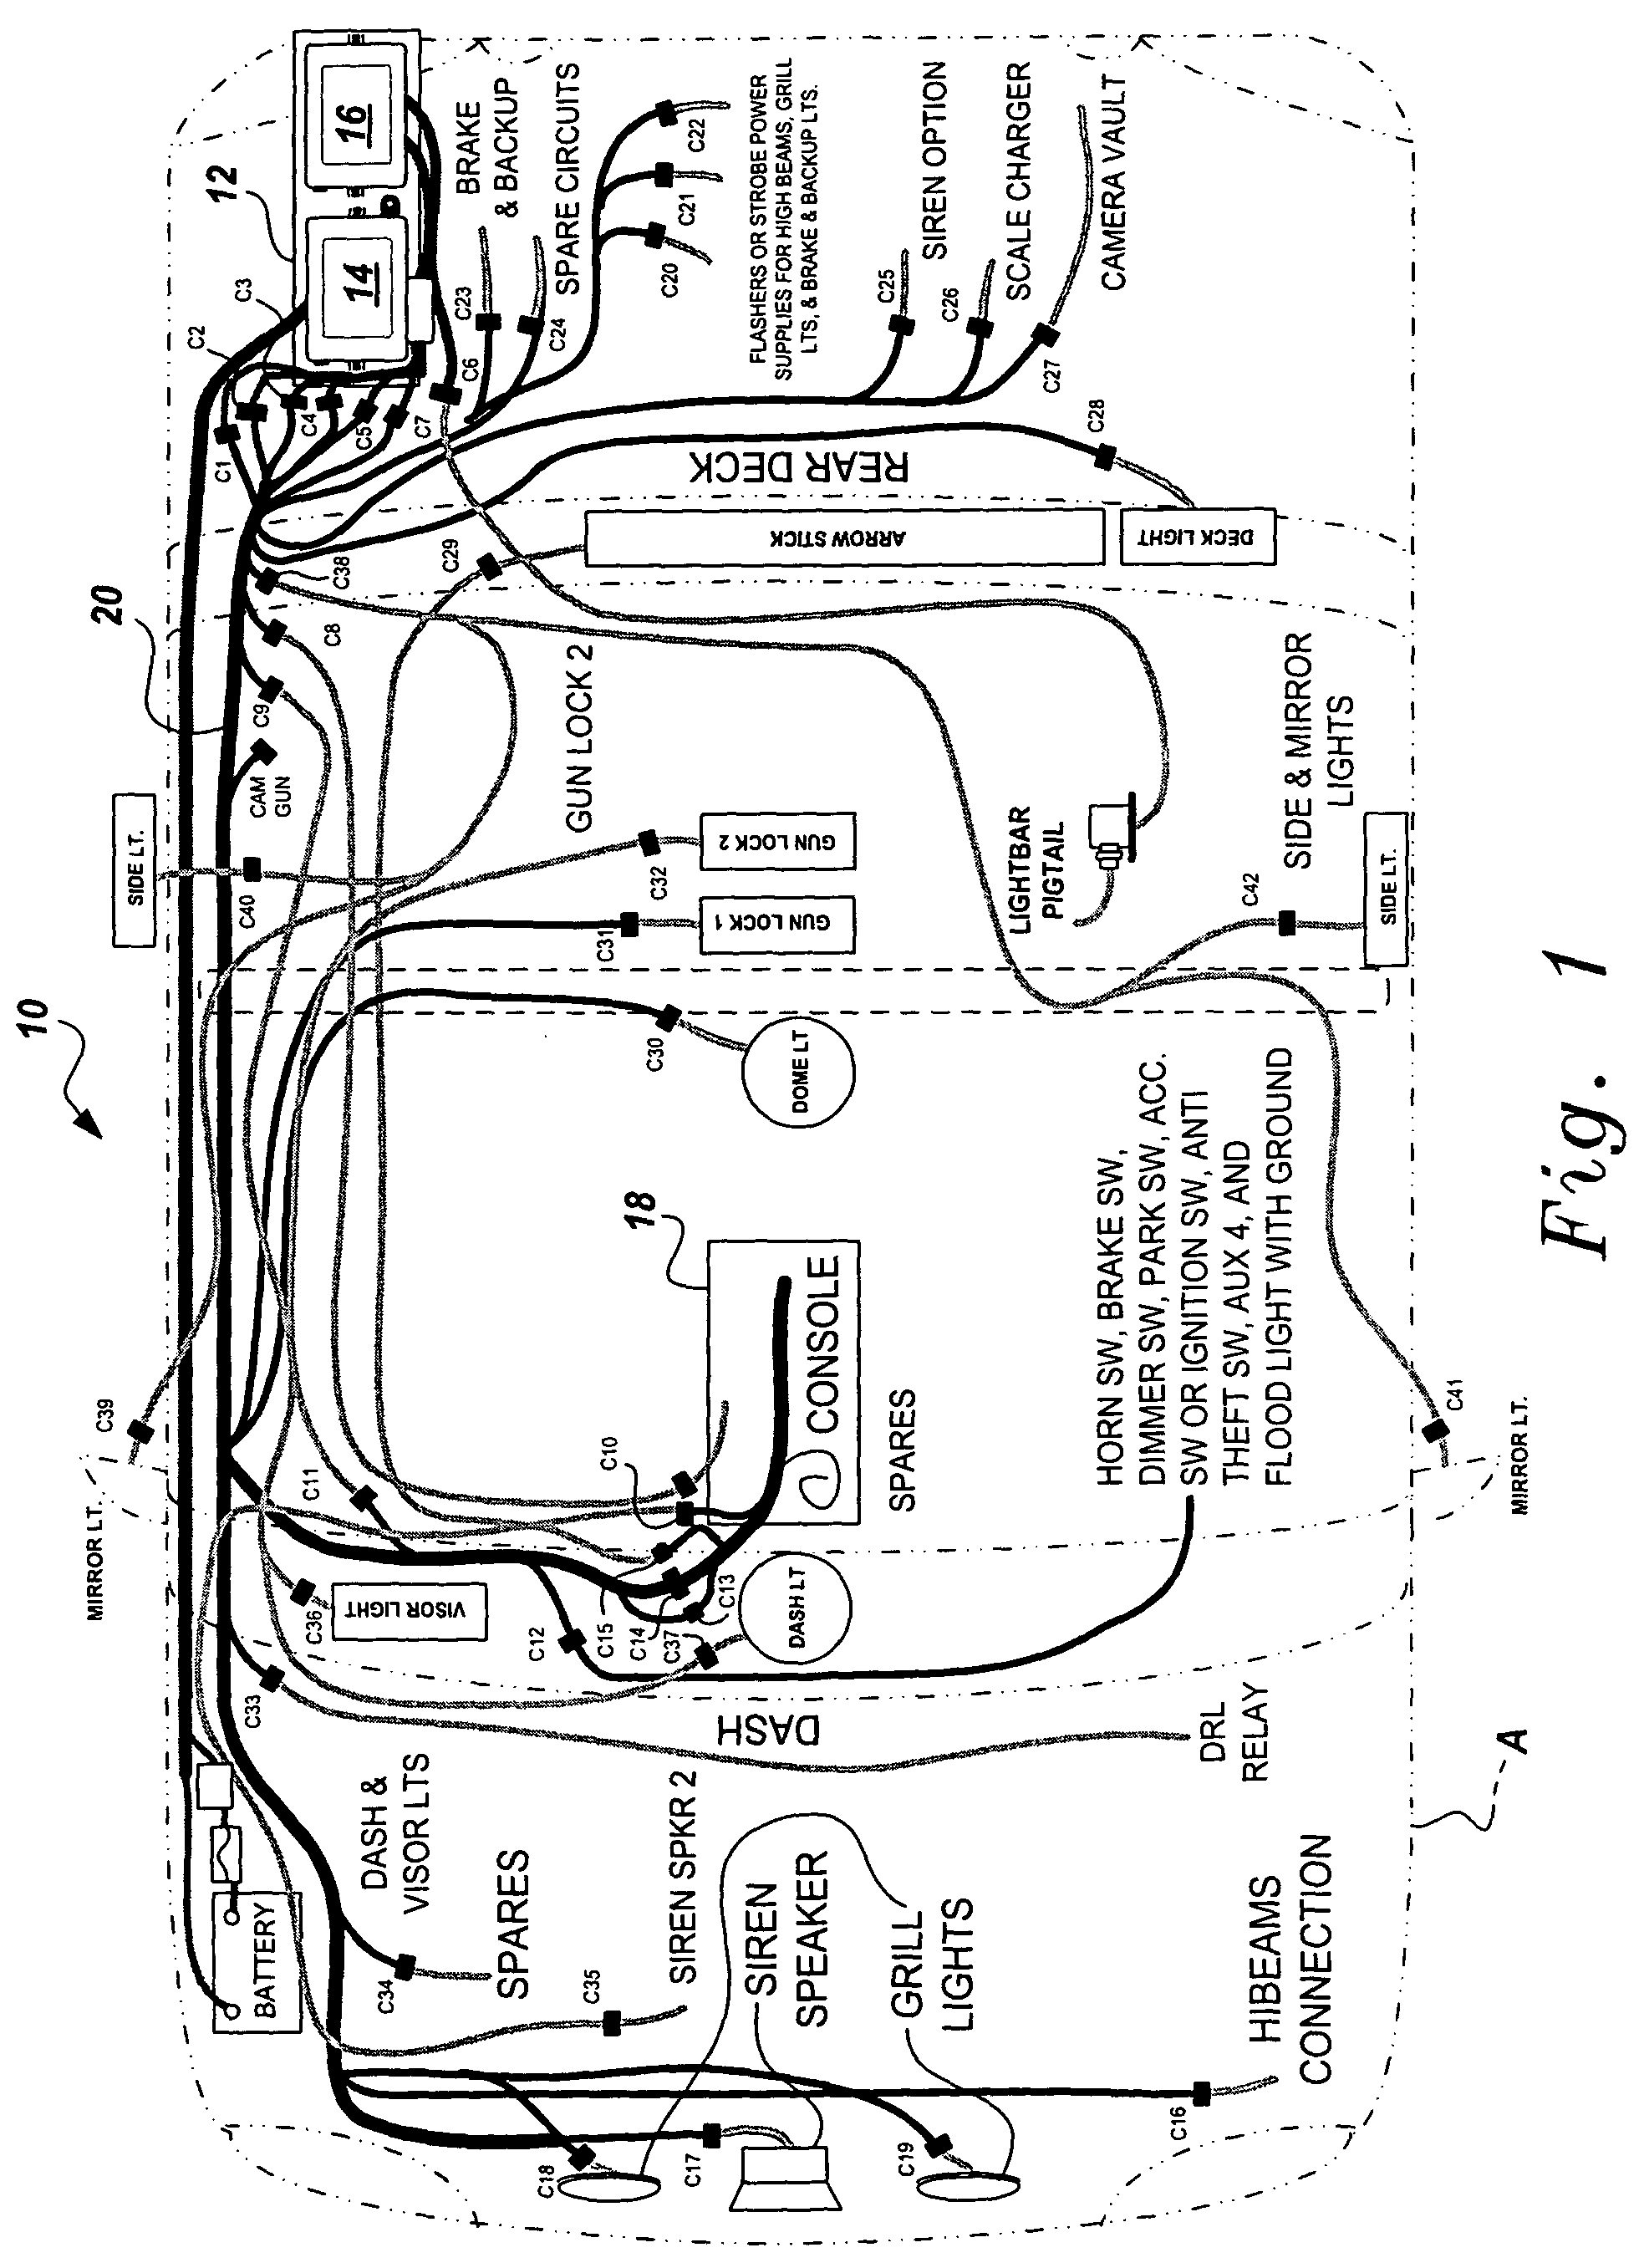 US07342325 20080311 D00001 patent us7342325 universal fleet electrical system google patents cat c15 wiring diagram at gsmportal.co